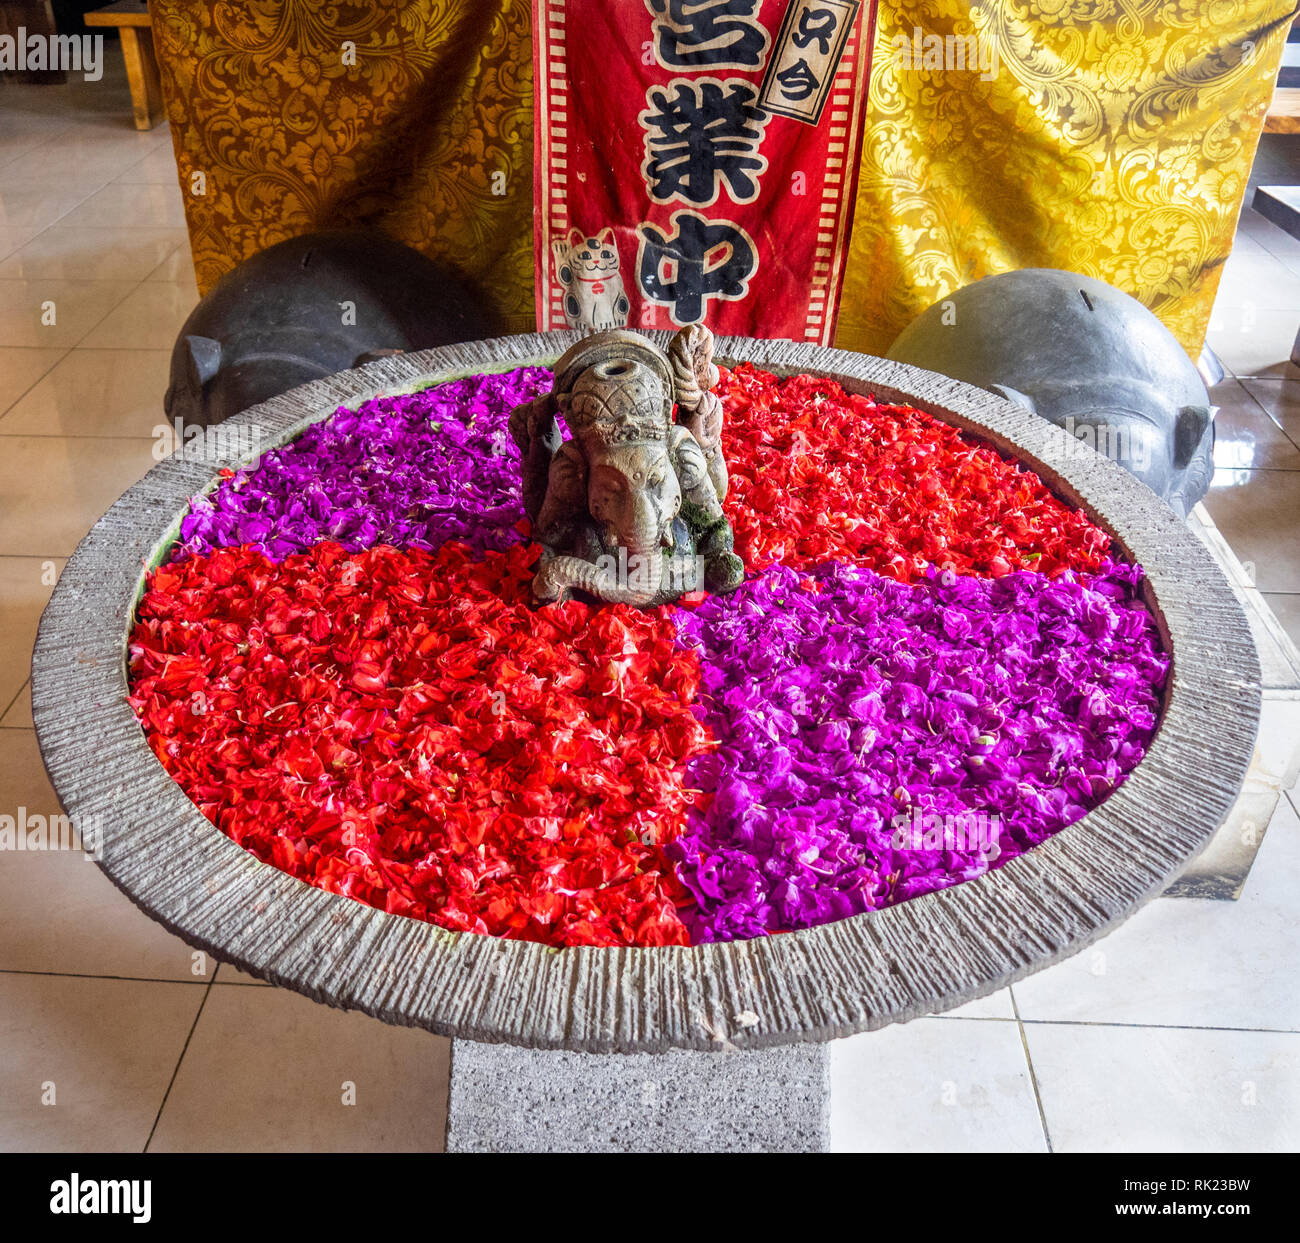 An urn filled with red and magenta flower petals in Jimbaran, Bali Indonesia. - Stock Image